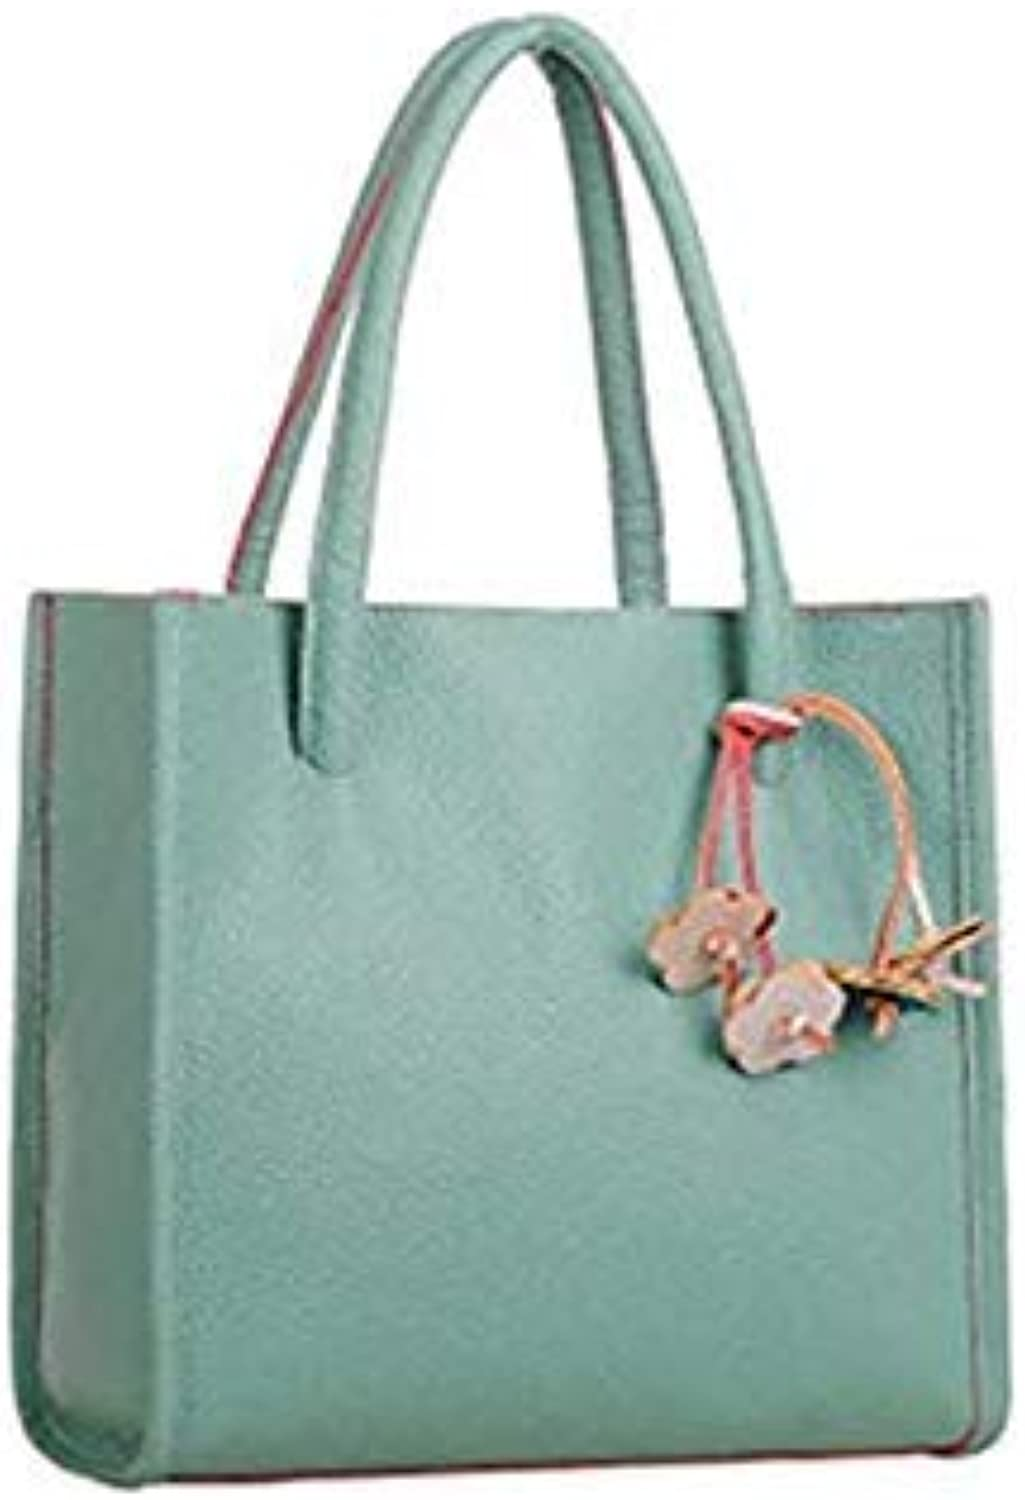 Bloomerang New Bags Simple Larger Shoulderbag Female Leather Women Casual Bag Messenger Fashion Lady Laptop Handbag Multifunctional TASS 8 color Green